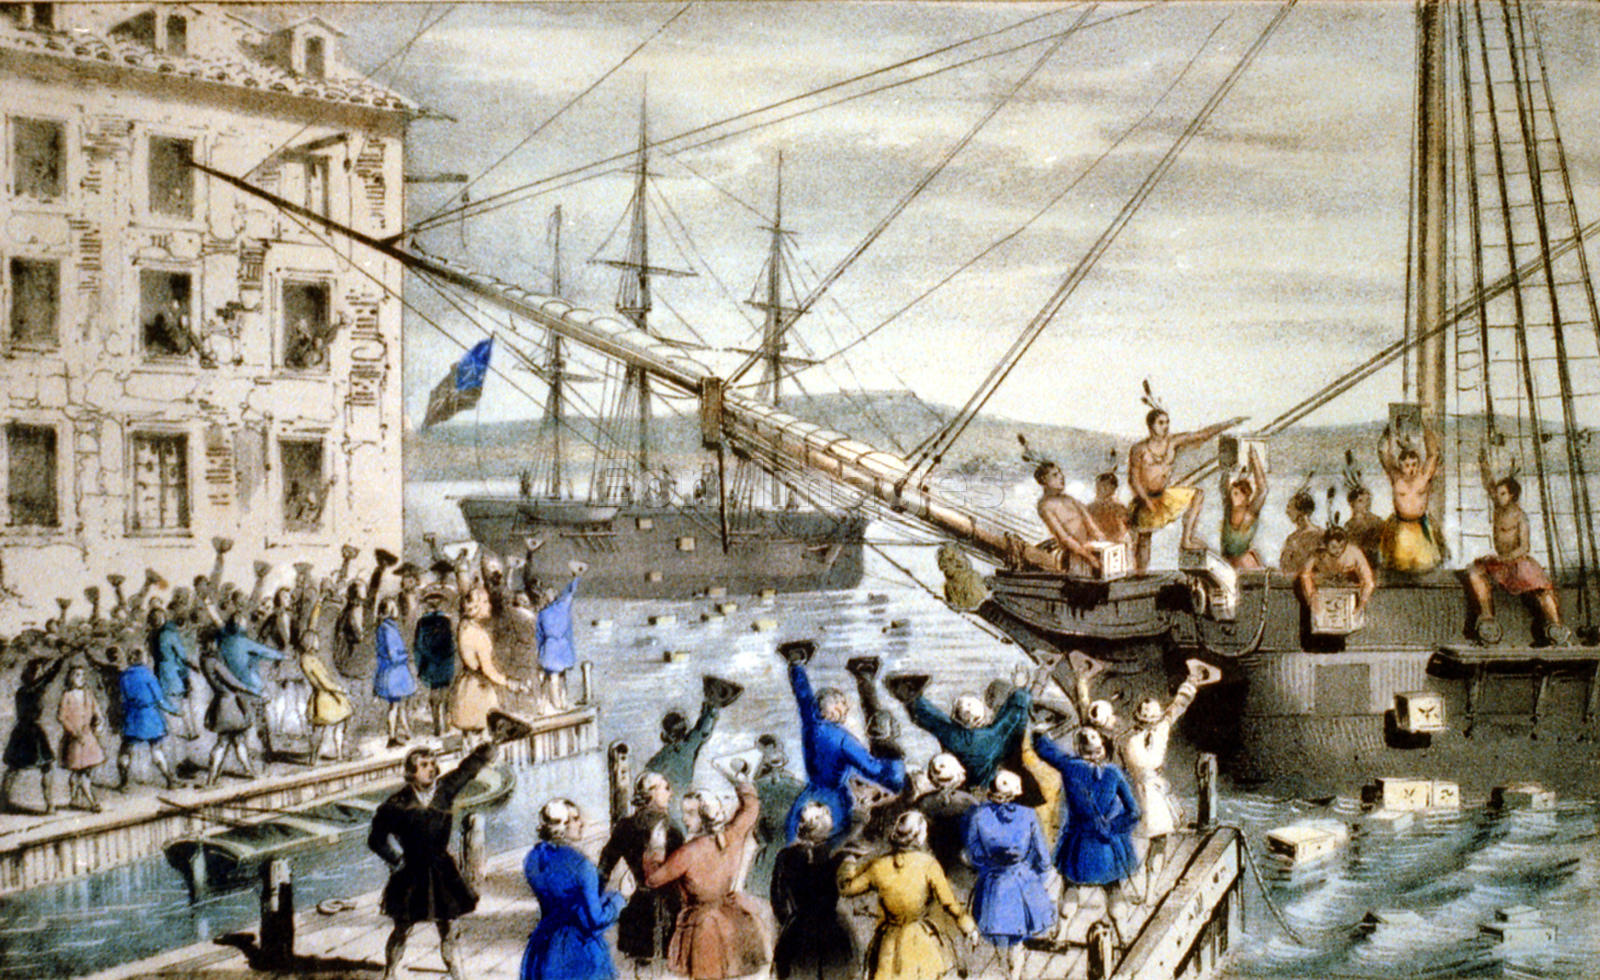 Patriots destroy tea at Boston Harbor